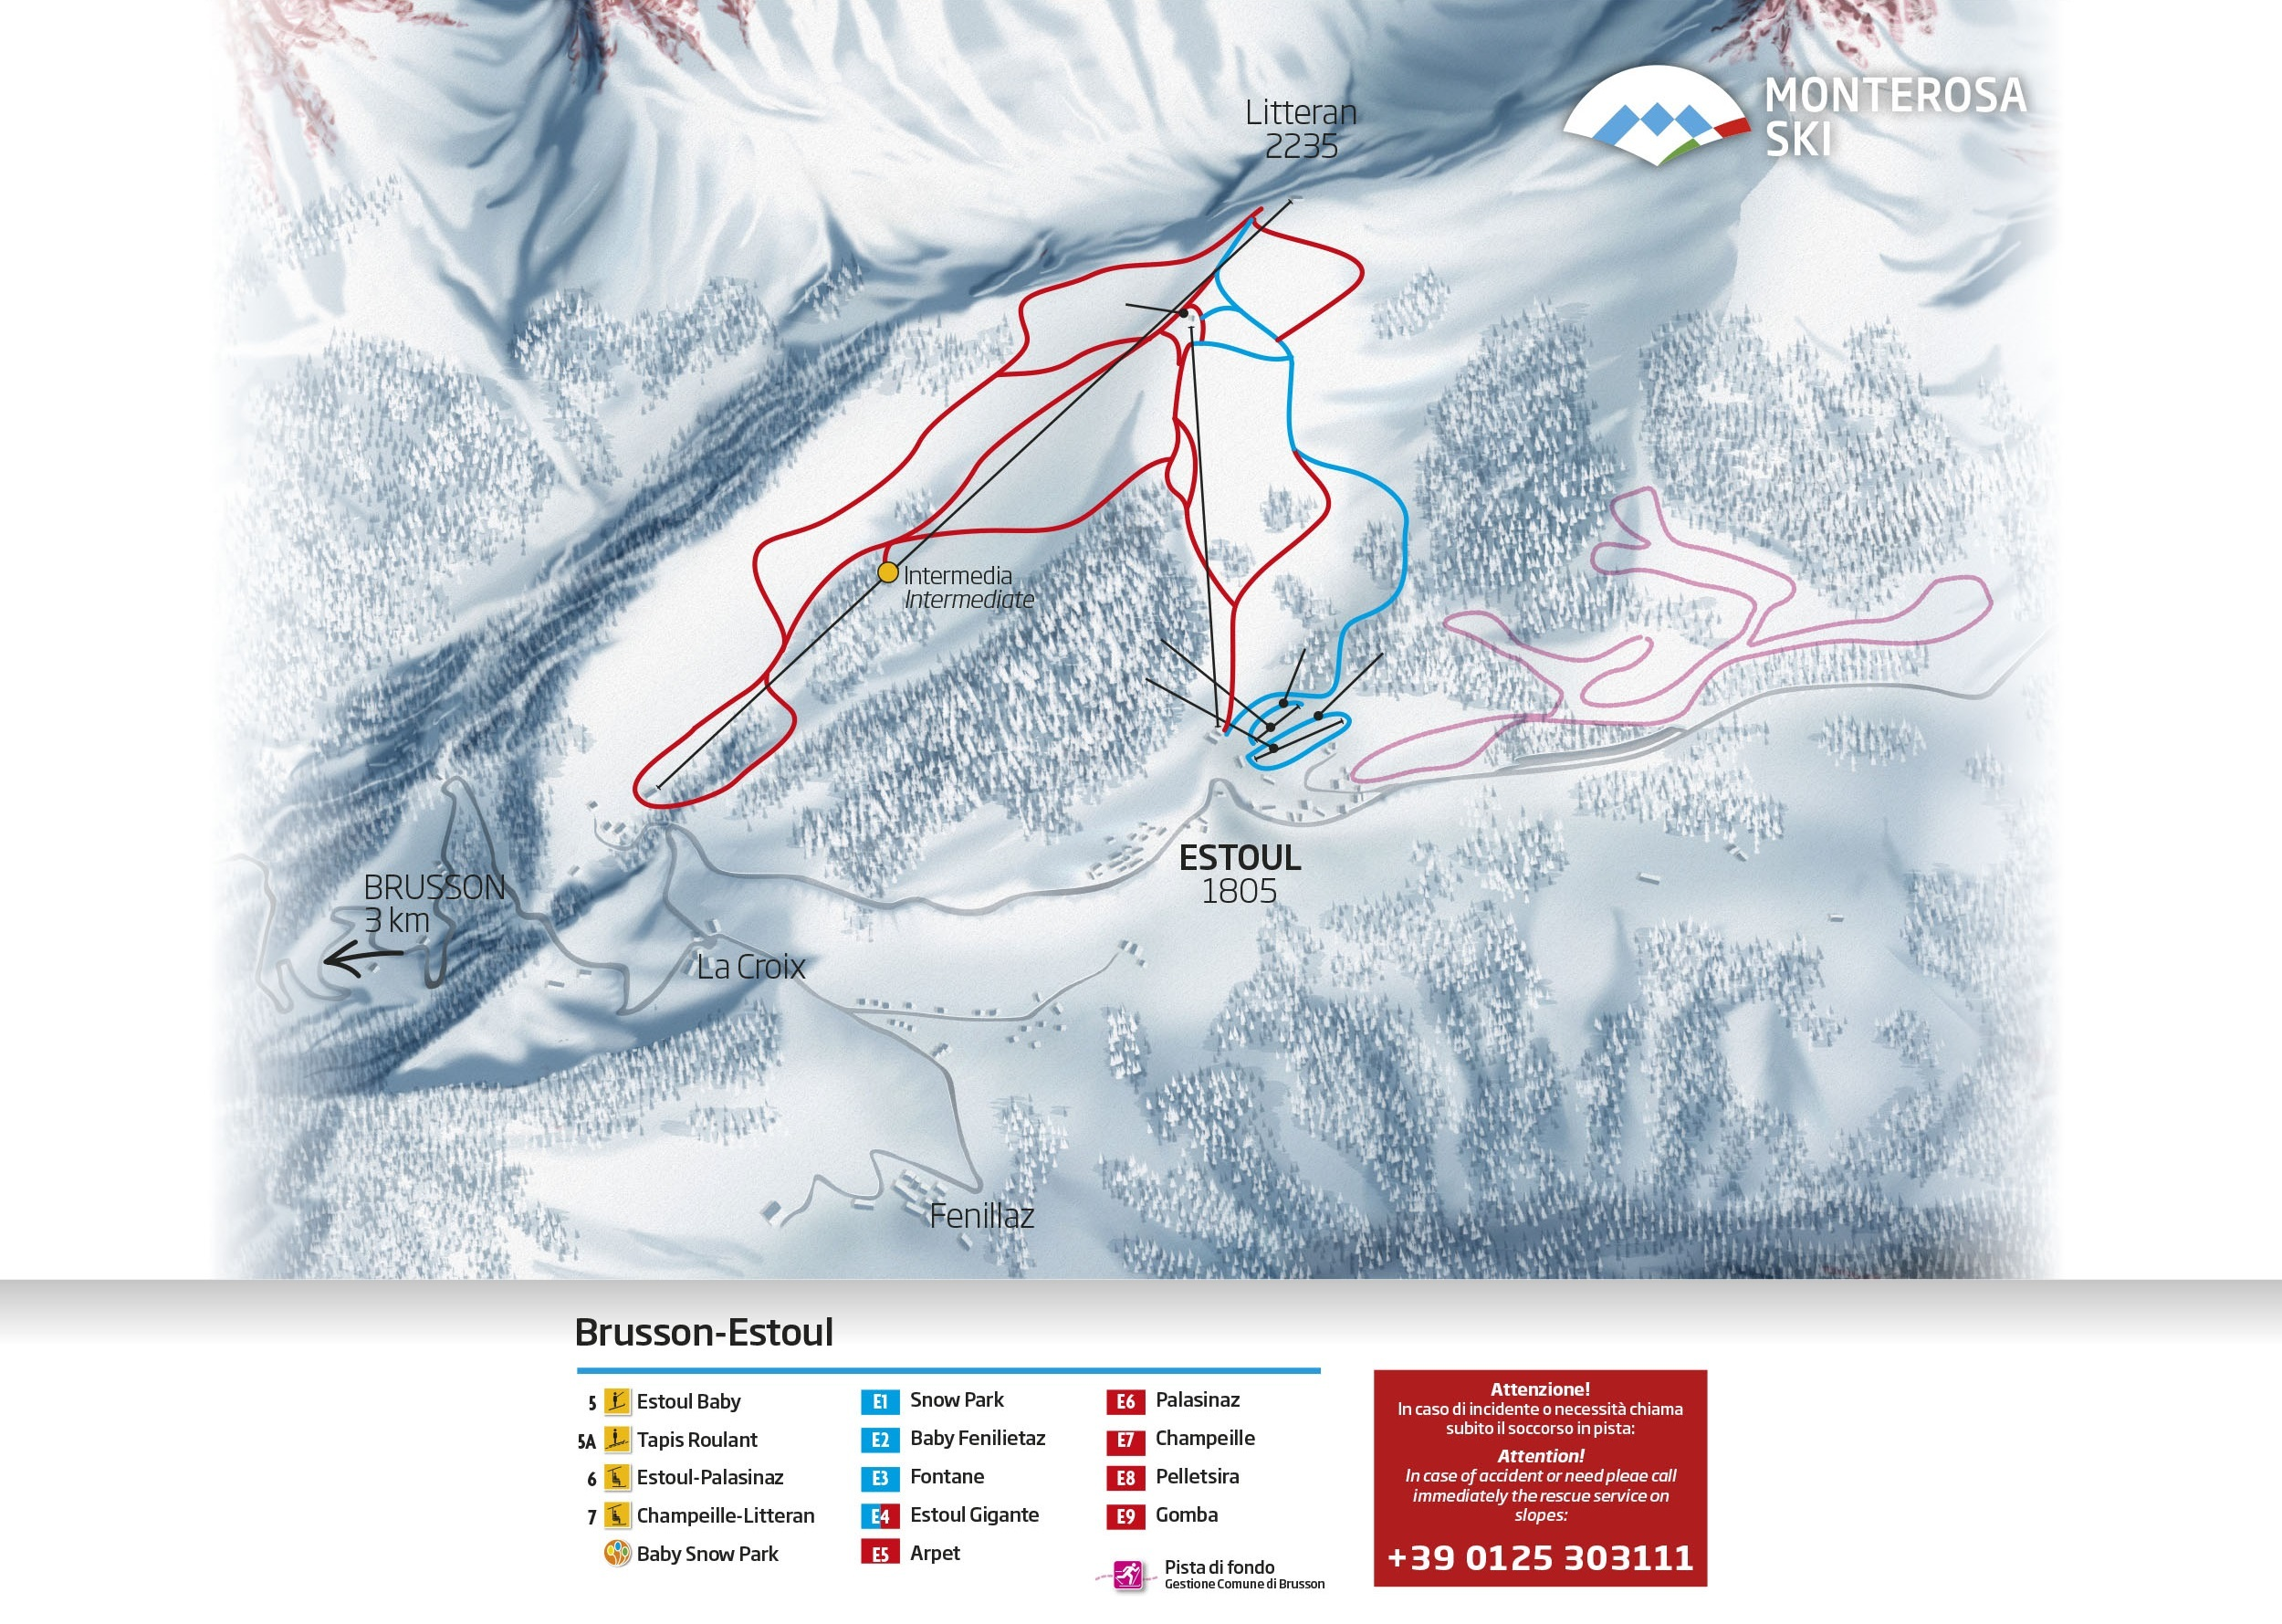 Tappeto Elettrico Subito Brusson Piste Map Plan Of Ski Slopes And Lifts Onthesnow